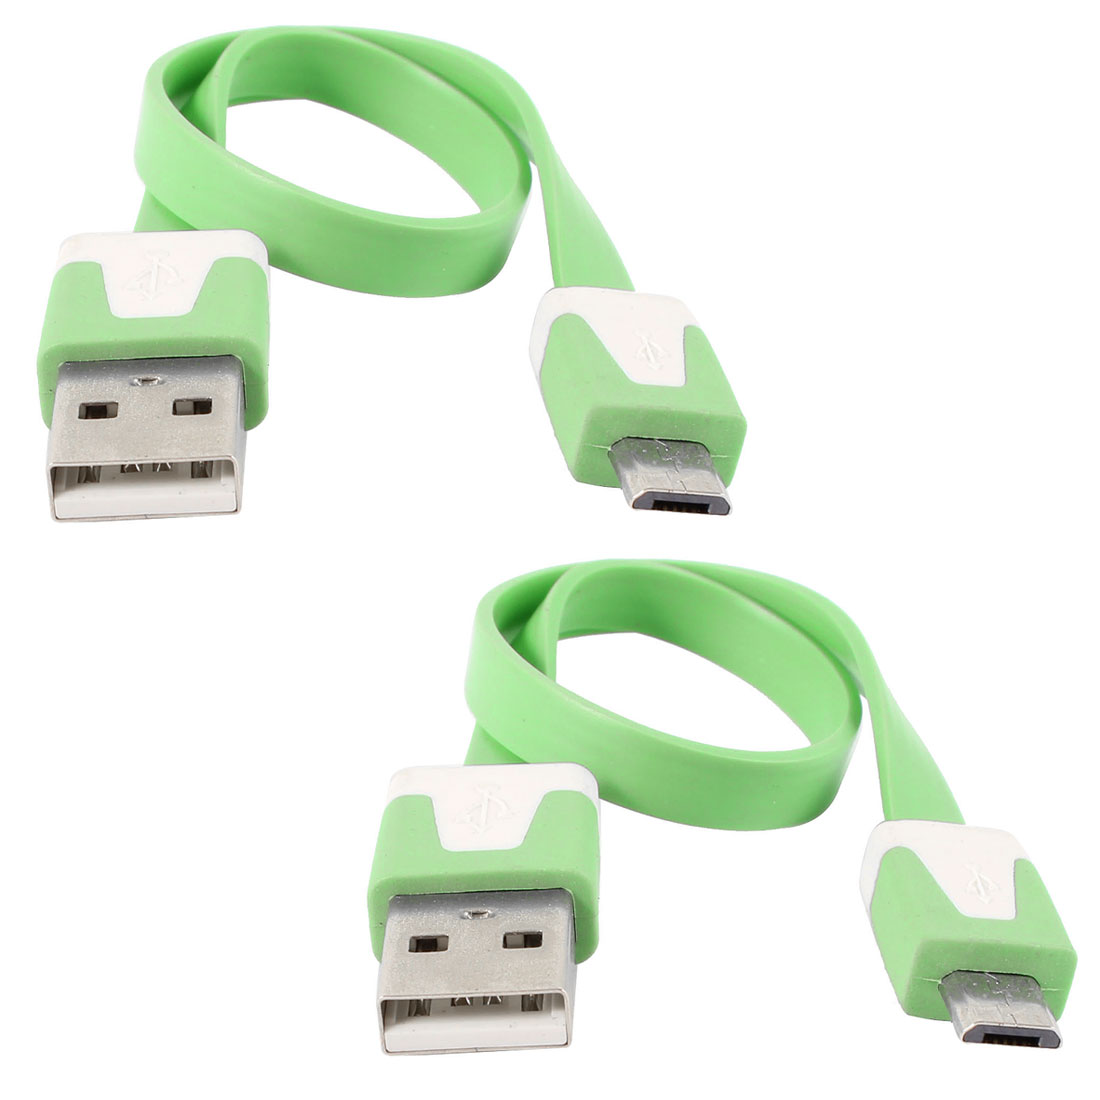 Unique Bargains 2pcs Green USB2.0 A to Micro B 5Pin M/M Data Charger Flat Cable for HTC